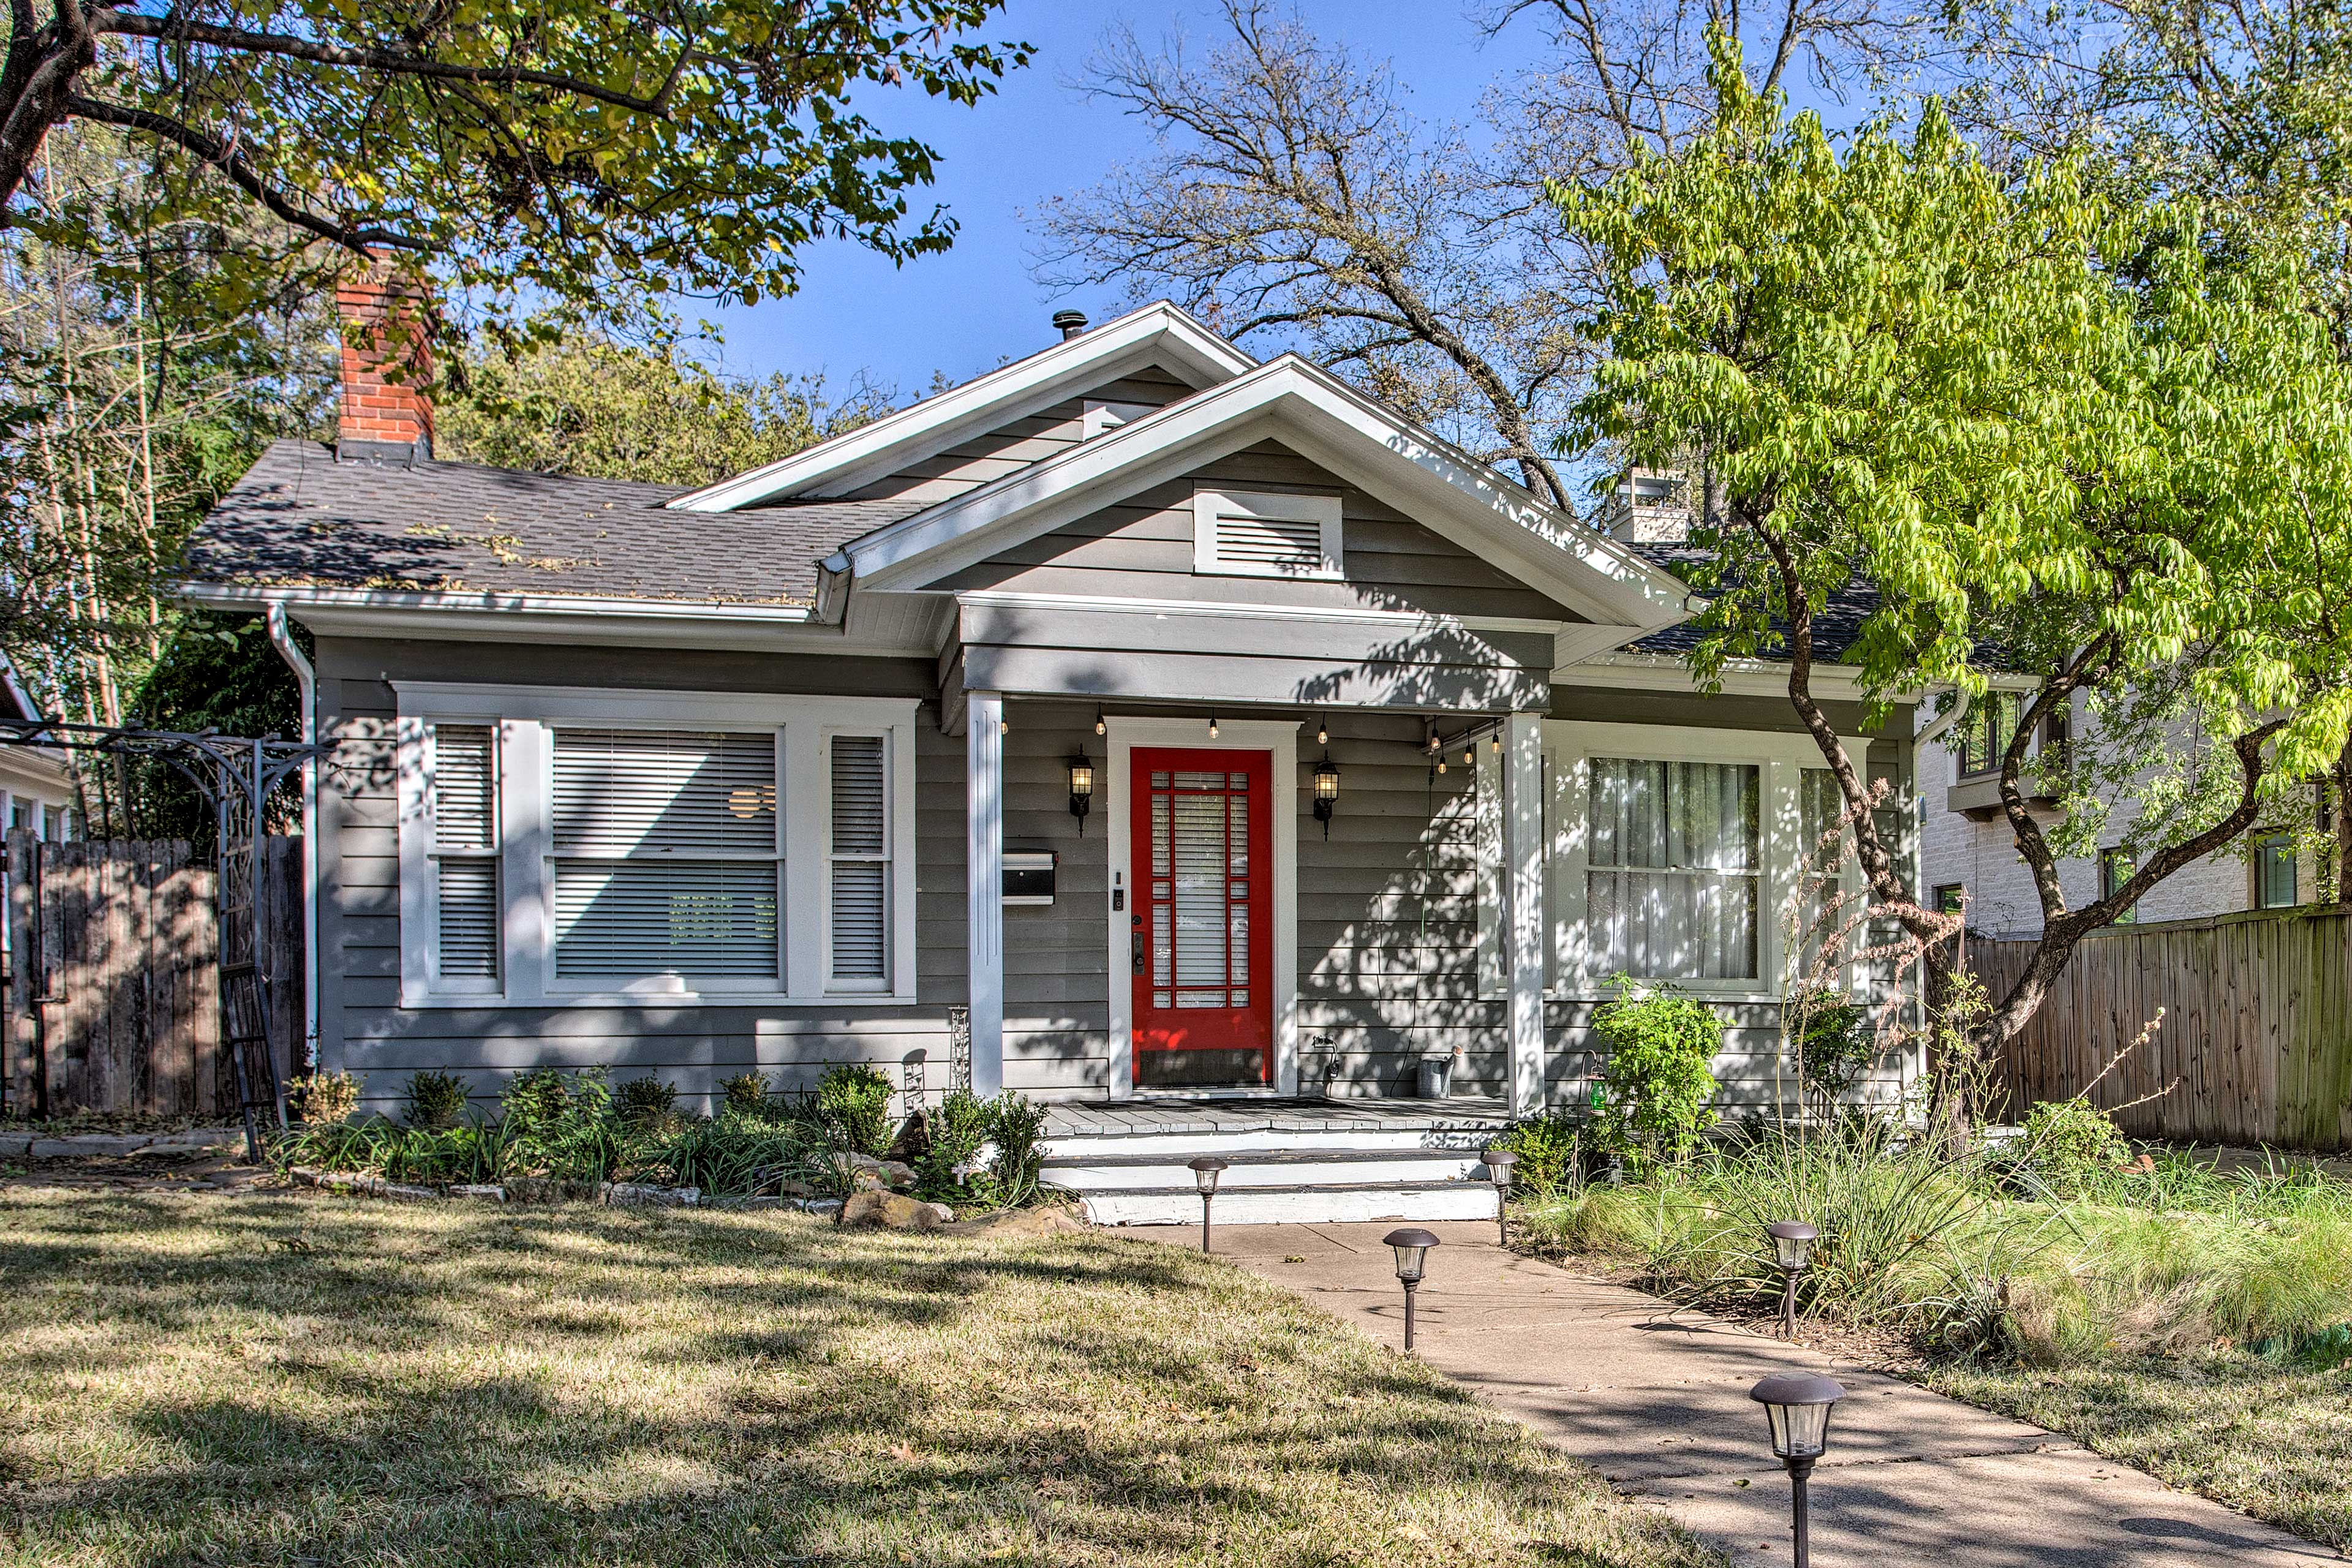 This property is just 2 blocks from Lower Greenville.